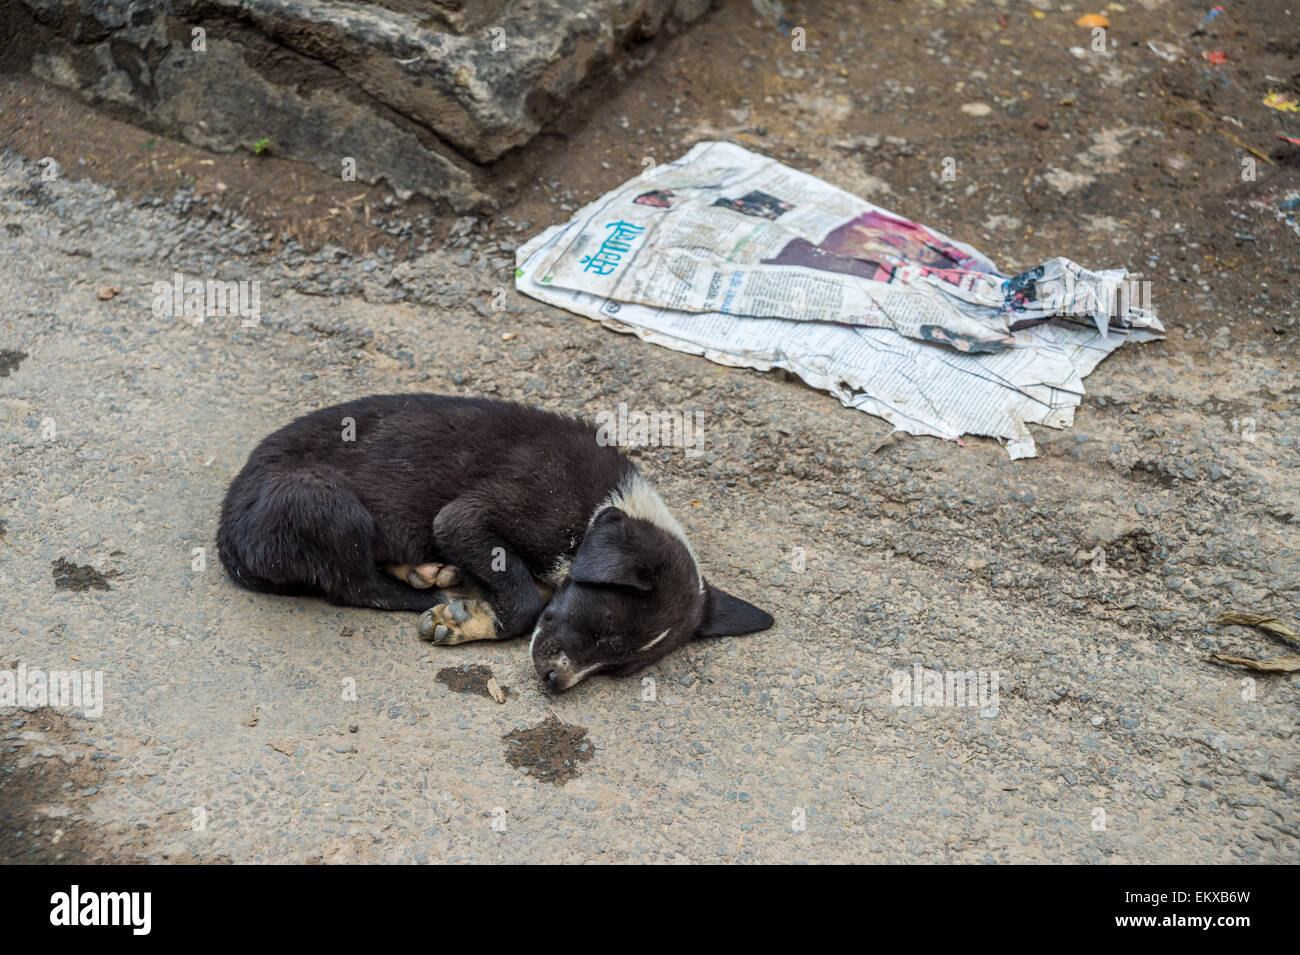 A puppy is sleeping on the ground in Kathmandu, Nepal Stock Photo